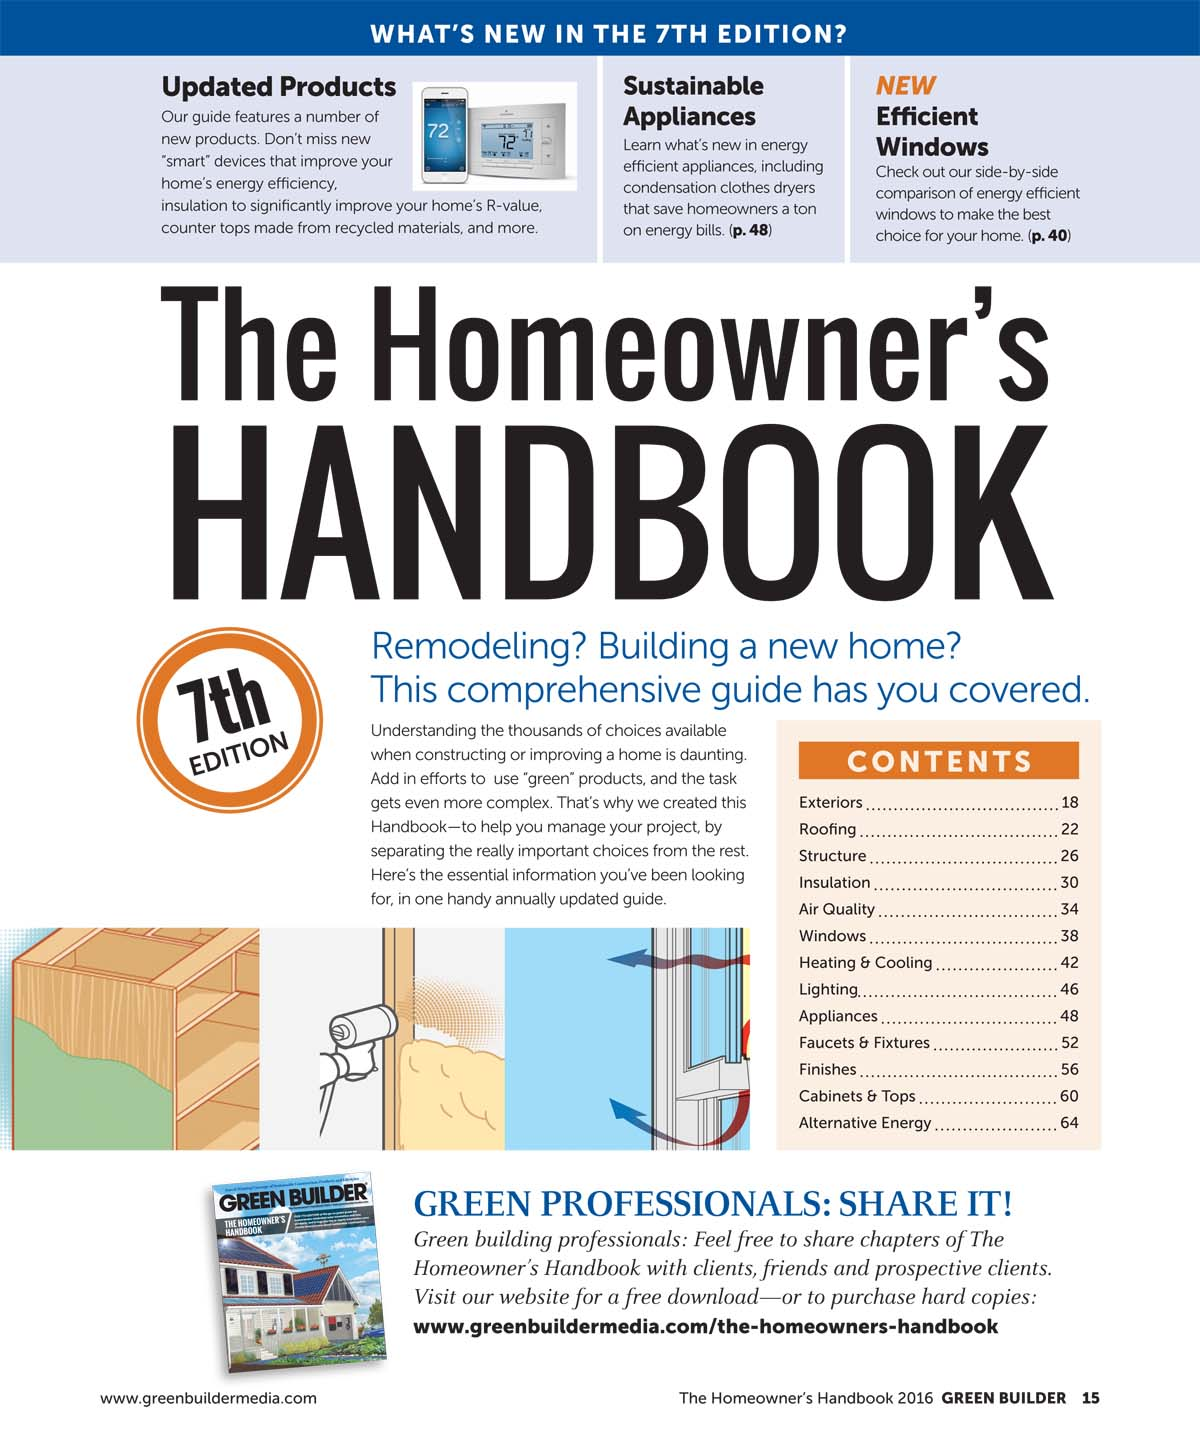 Homeowner's Handbook from Green Builder Media